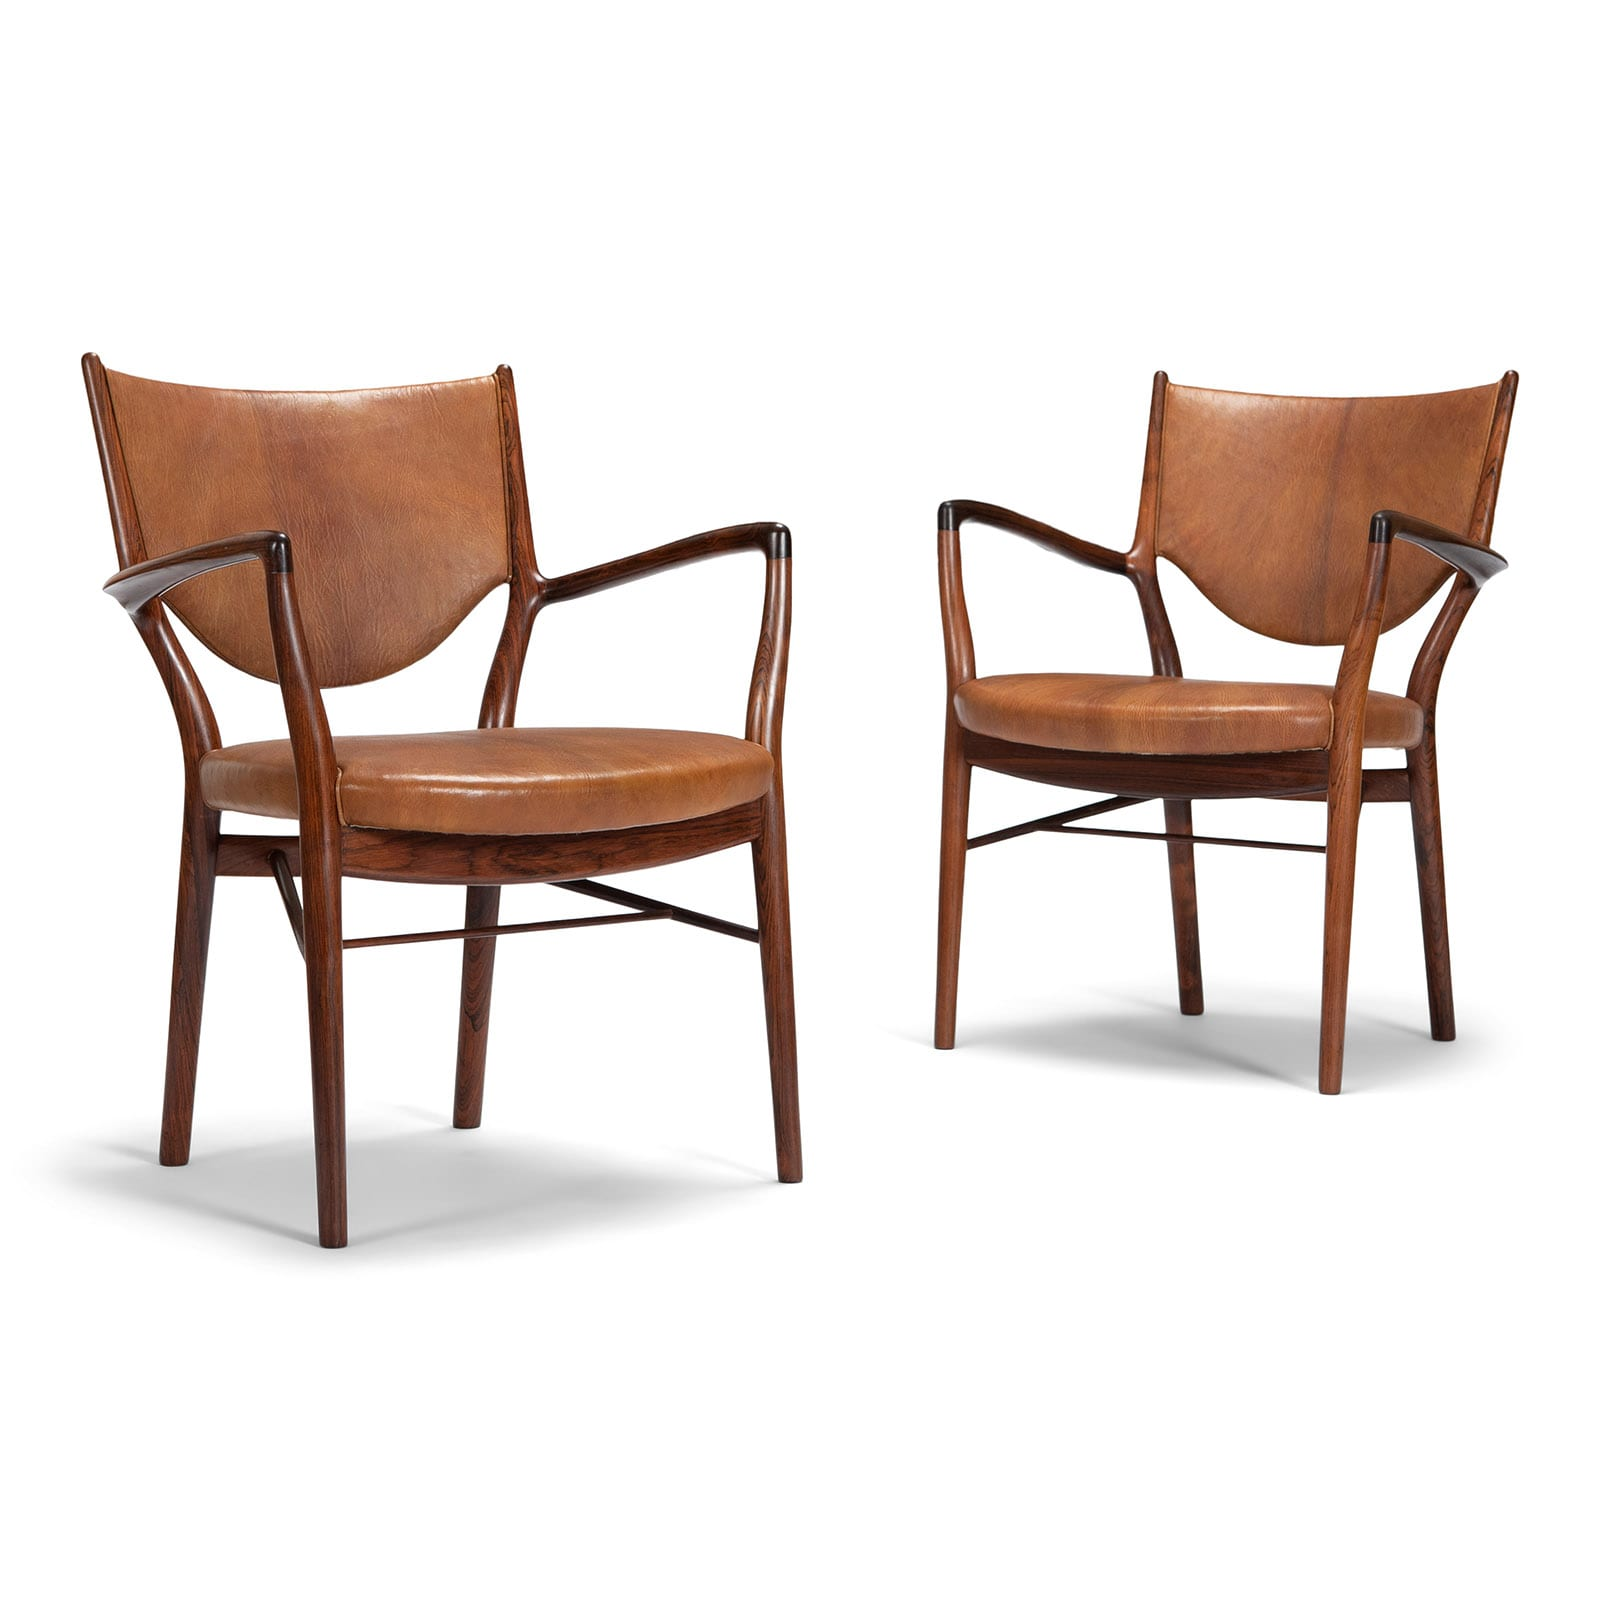 A pair of NV46 armchairs